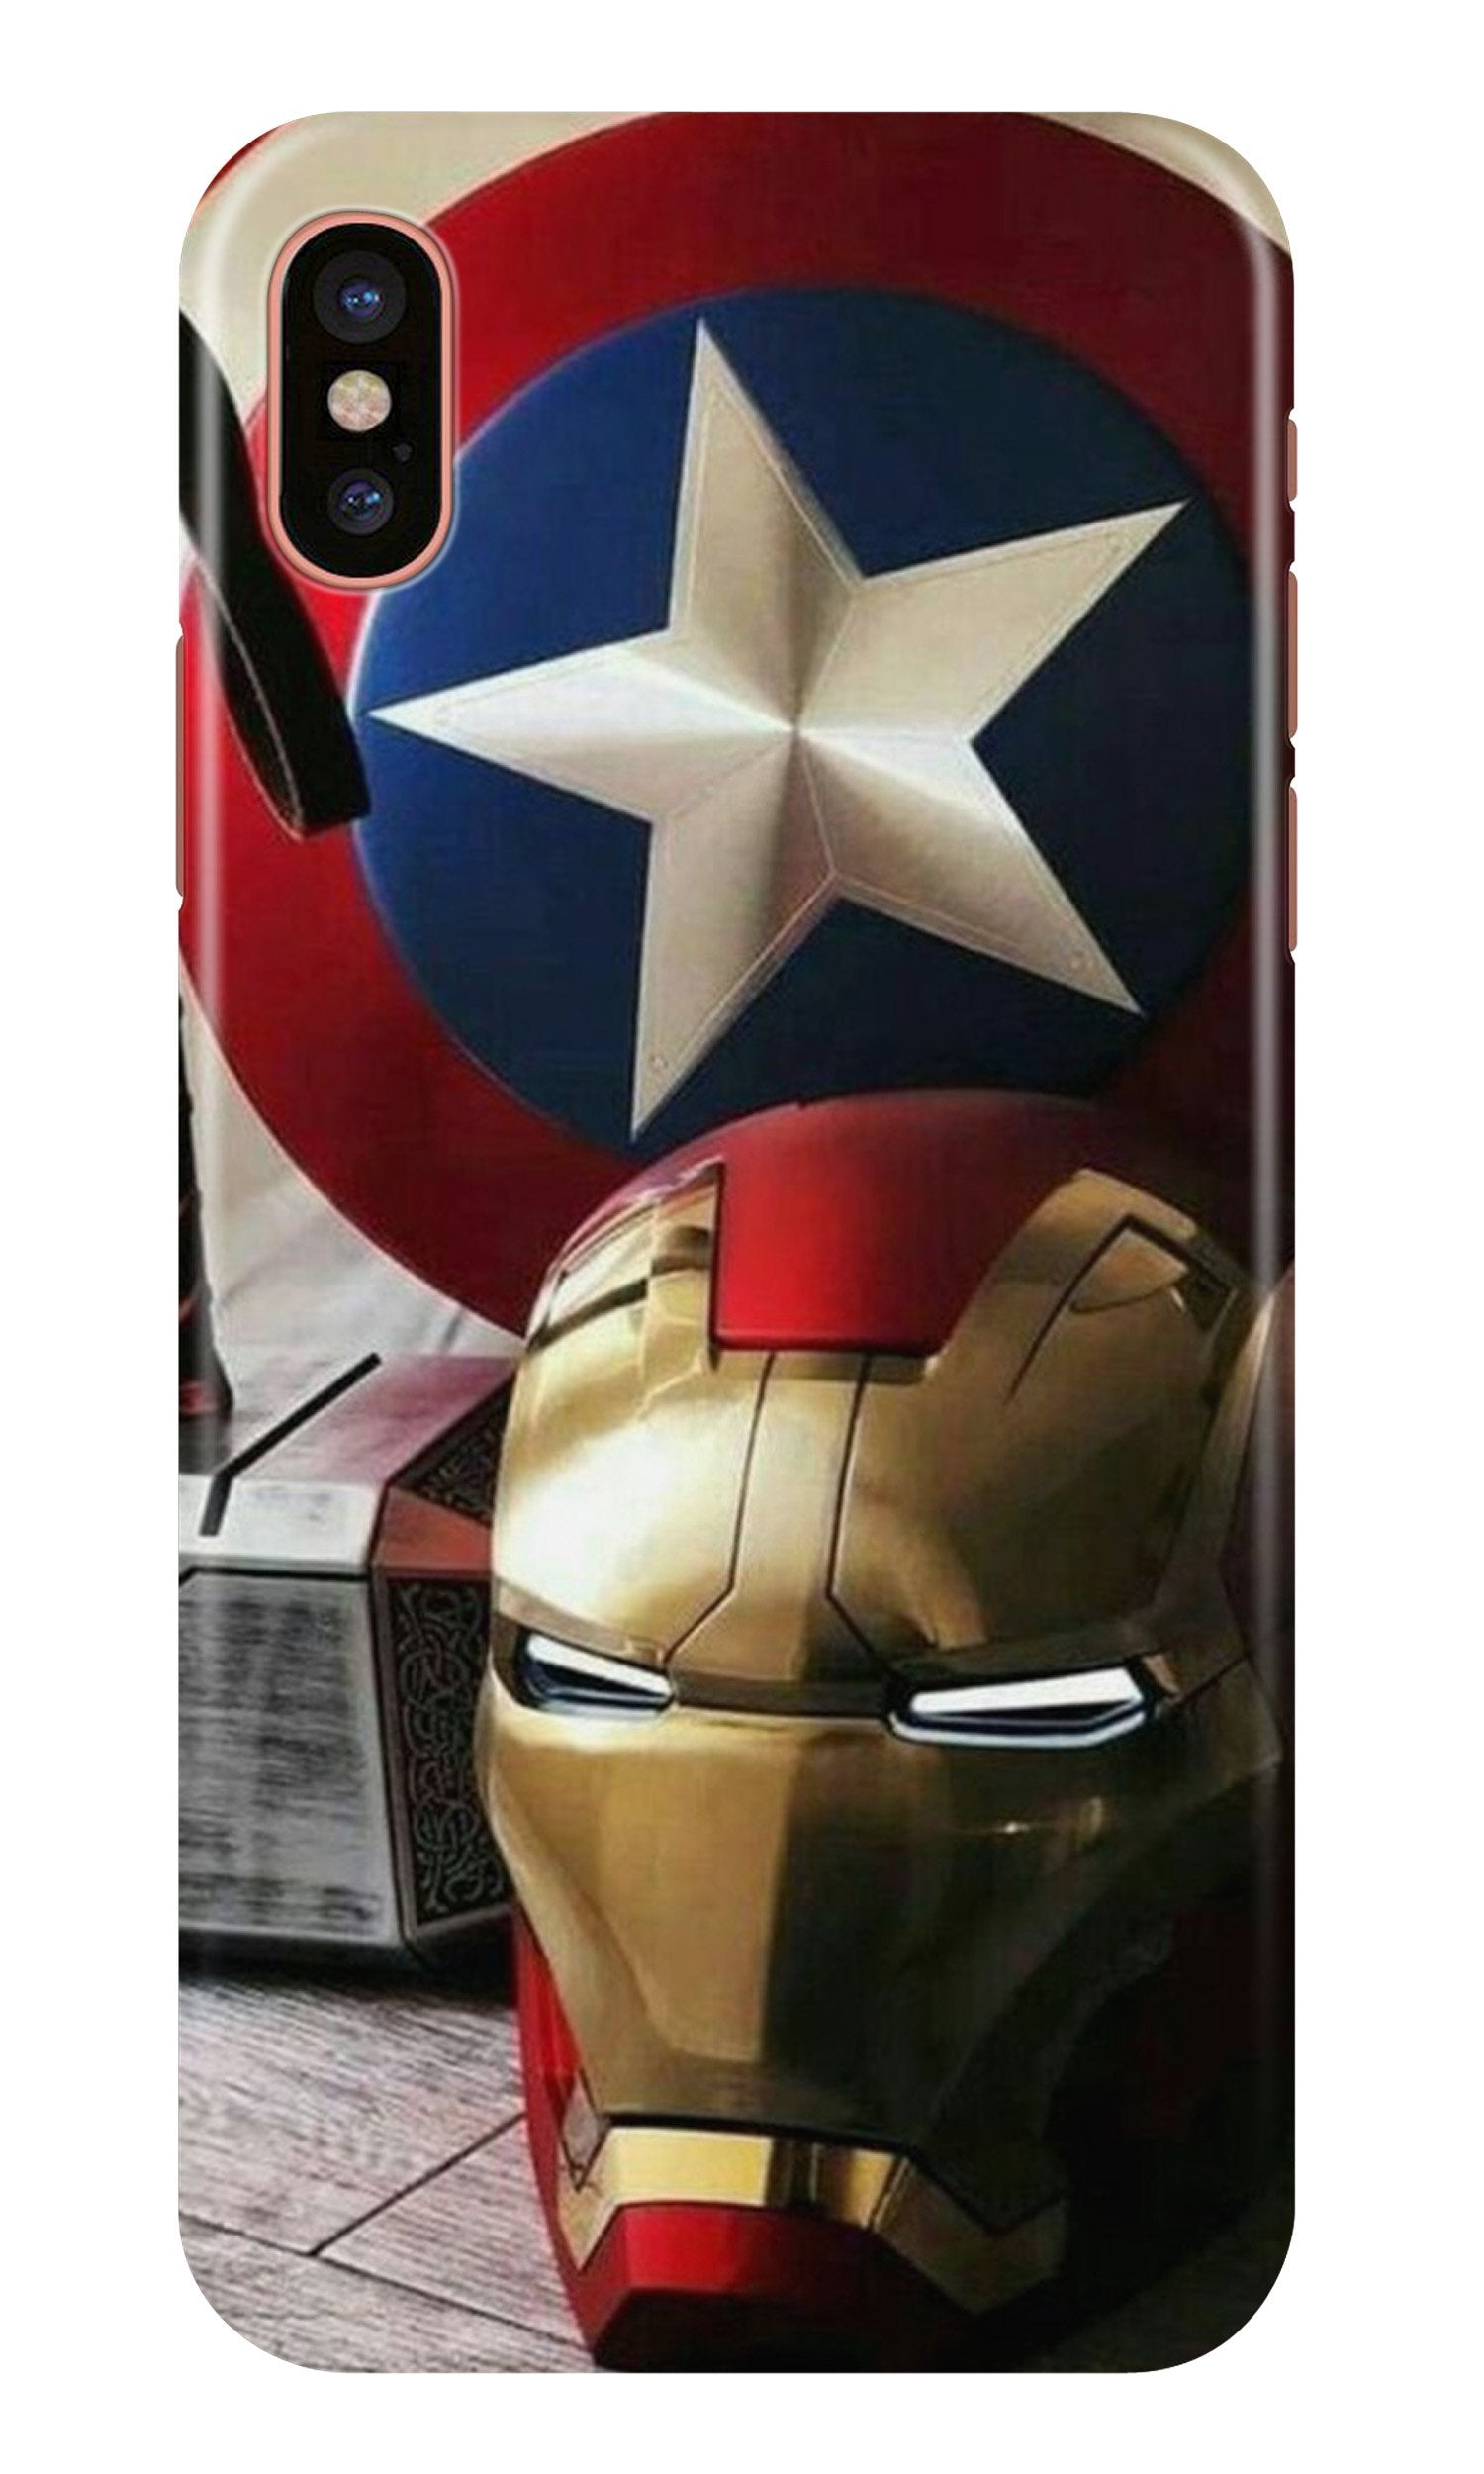 Ironman Captain America Case for iPhone X (Design No. 254)